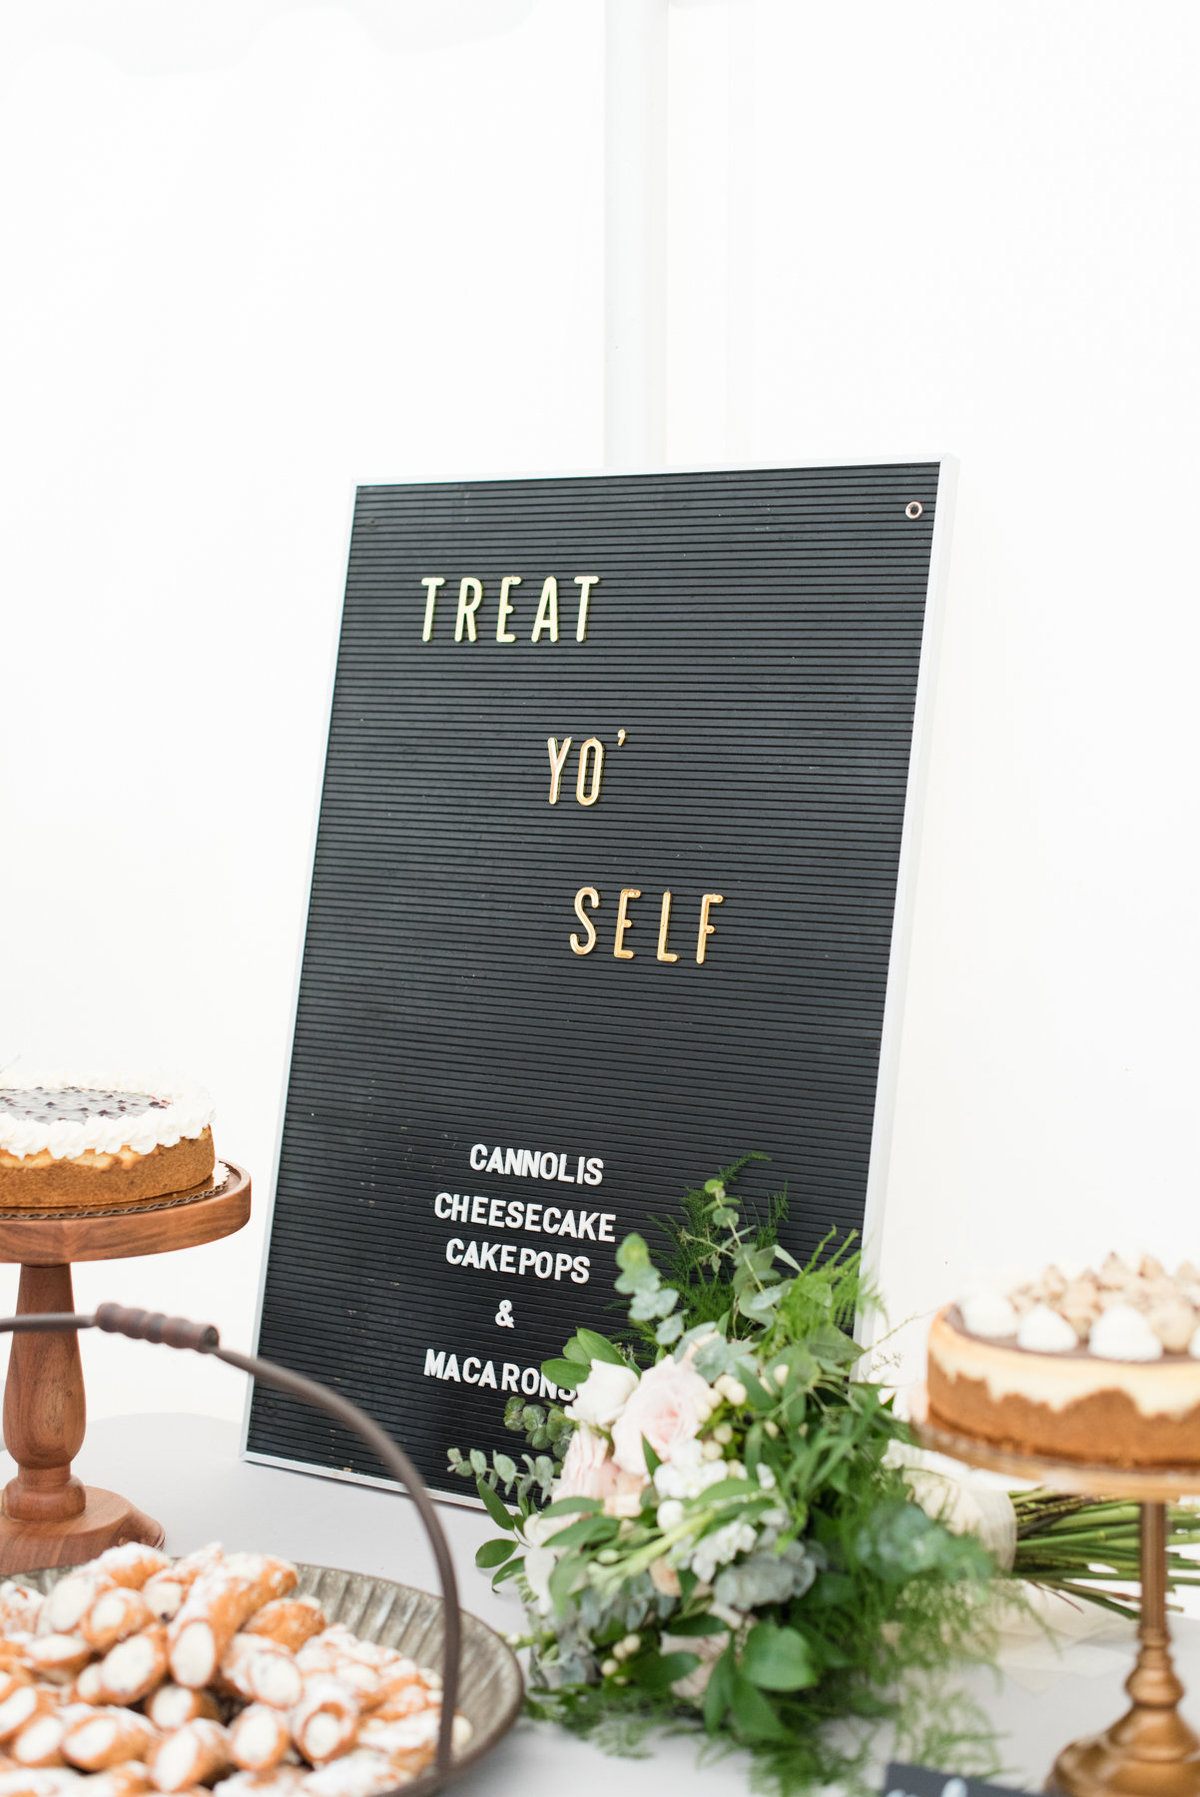 Letterboard decor from Heirlooms Vintage Rentals at Stepstone Centre wedding in Thundr Bay